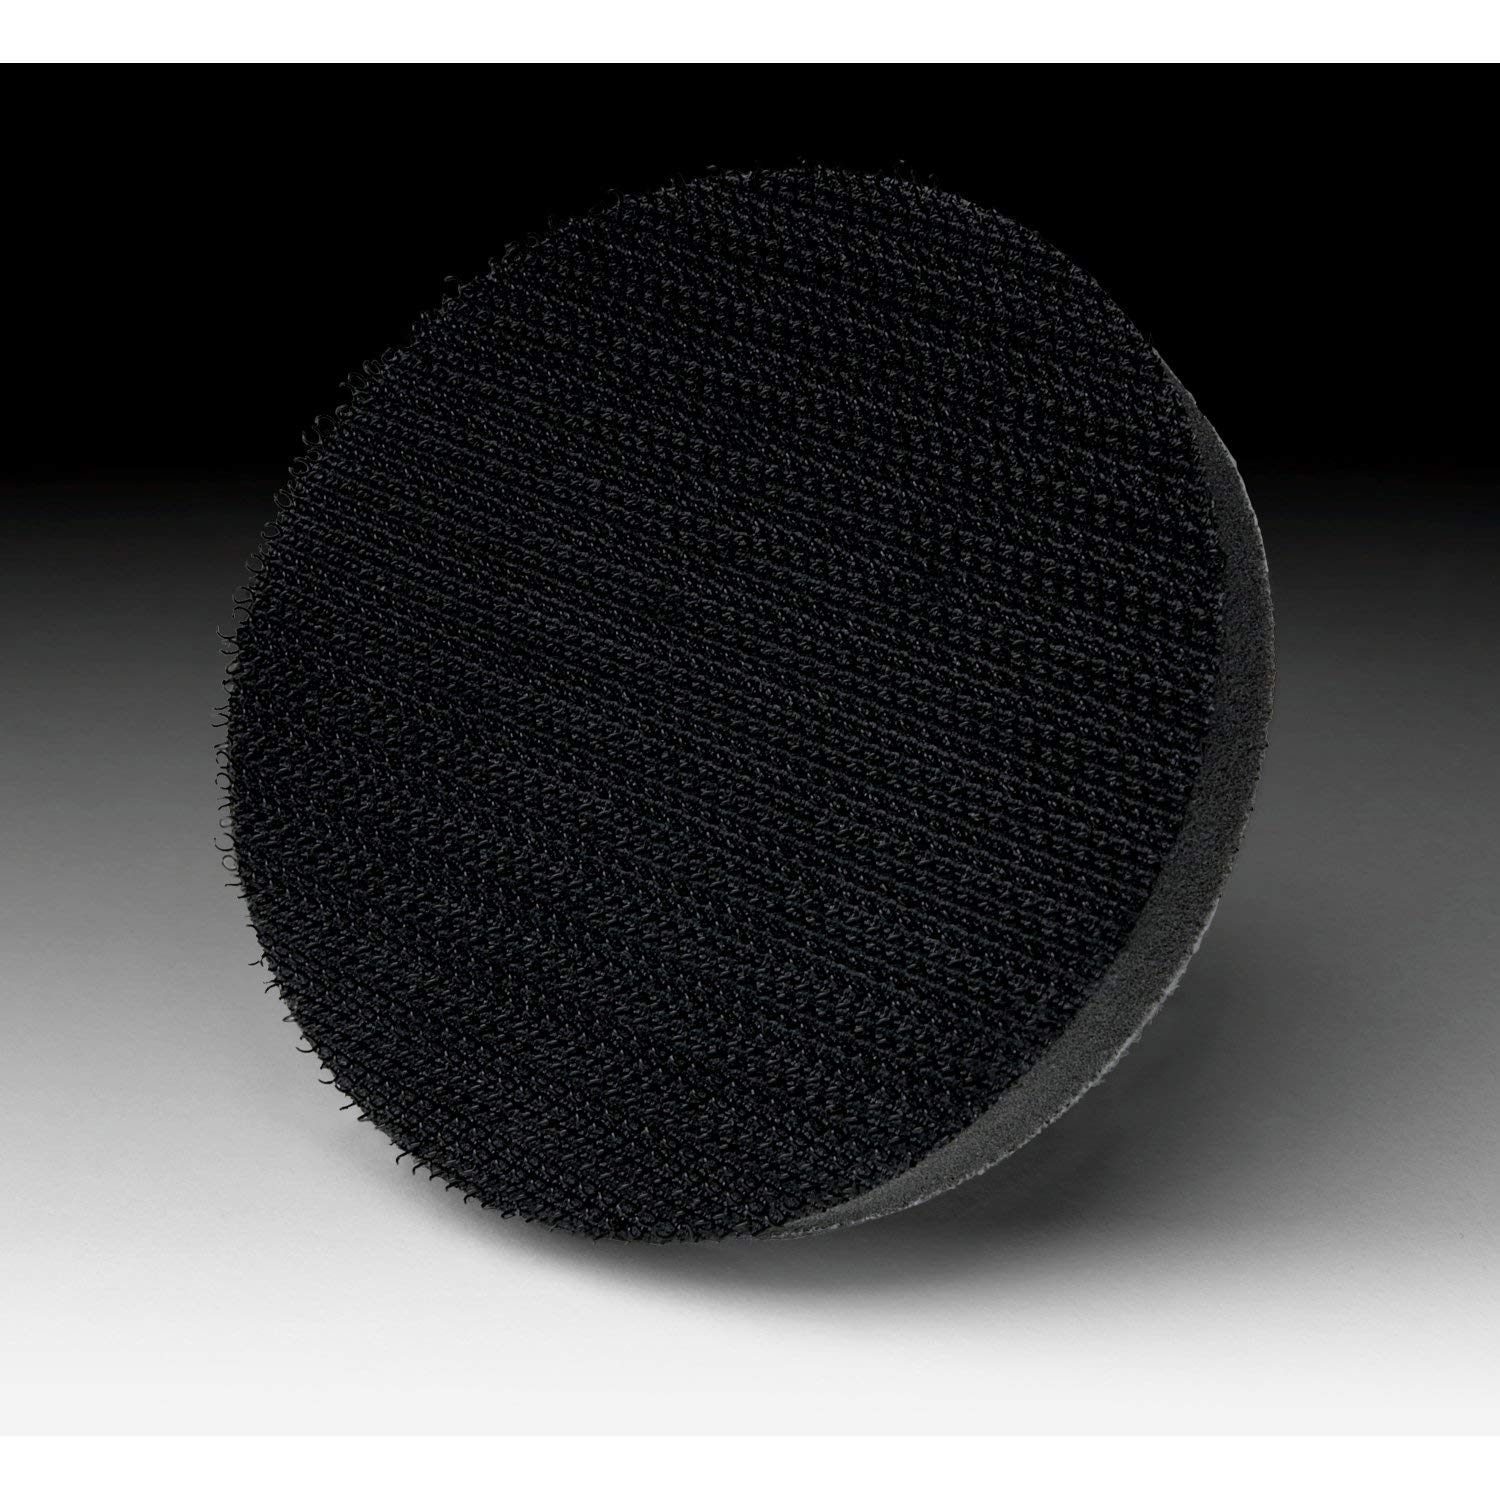 3M Popular products Hookit Soft Interface Mesa Mall Disc Pad 5 in 70166 x 1 2